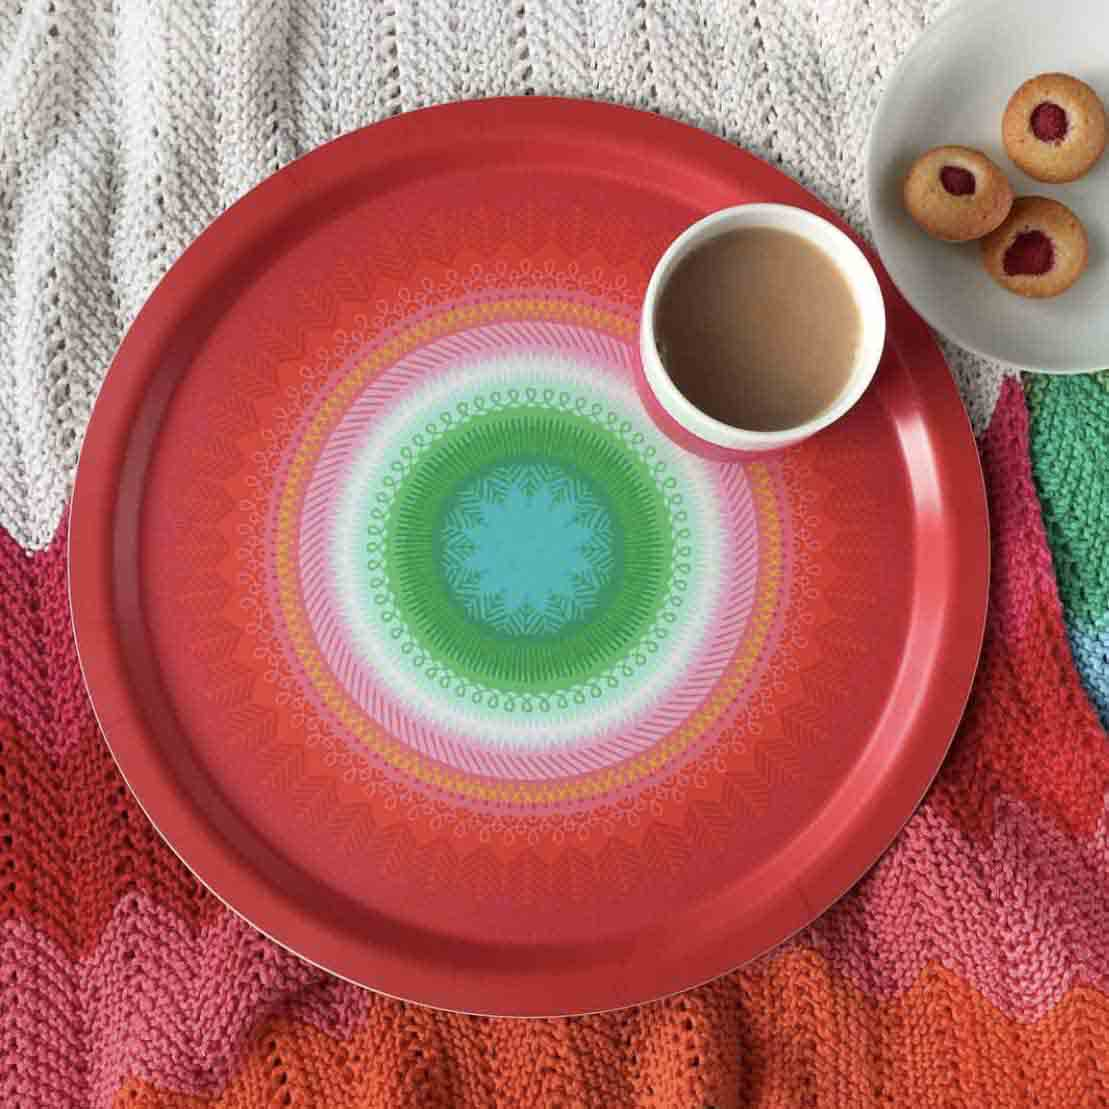 Fiesta Red Tray by Asta Barrington